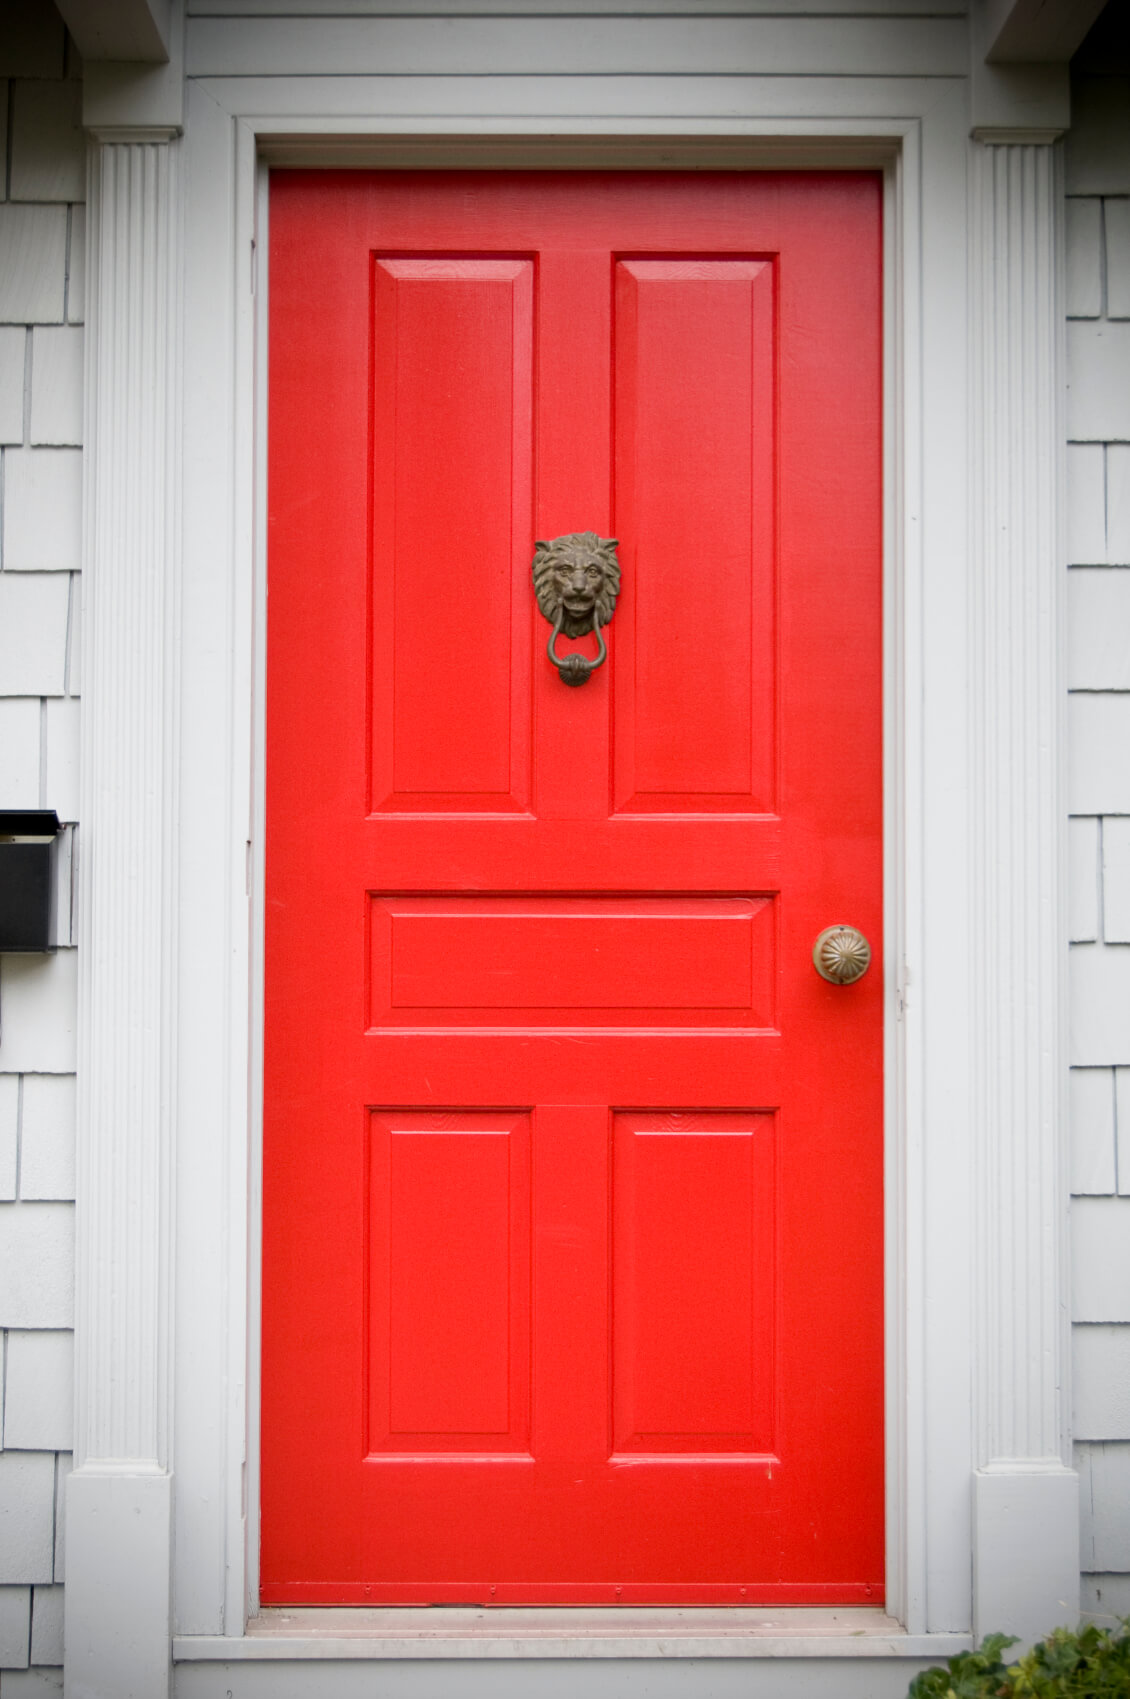 Off white molding and framing support this bright red door which has five rectangular